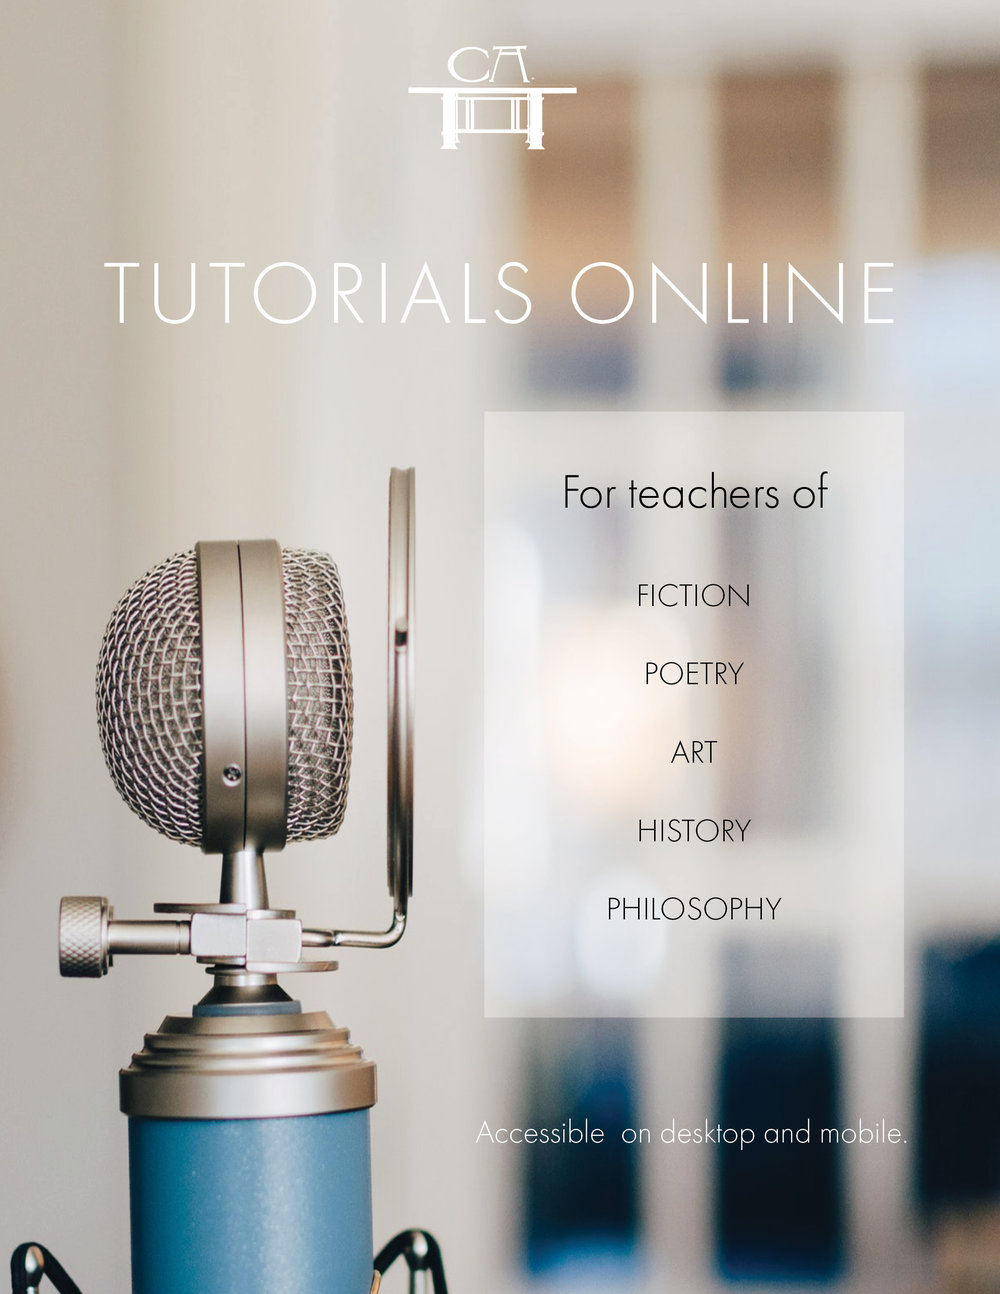 Tutorials - Boost your expertise on classic works of literature and art with this bank of Recorded Tutorials on fiction, poetry, art, history, and philosophy. Join a Live Tutorial each month. Premium and Master members have exclusive access.